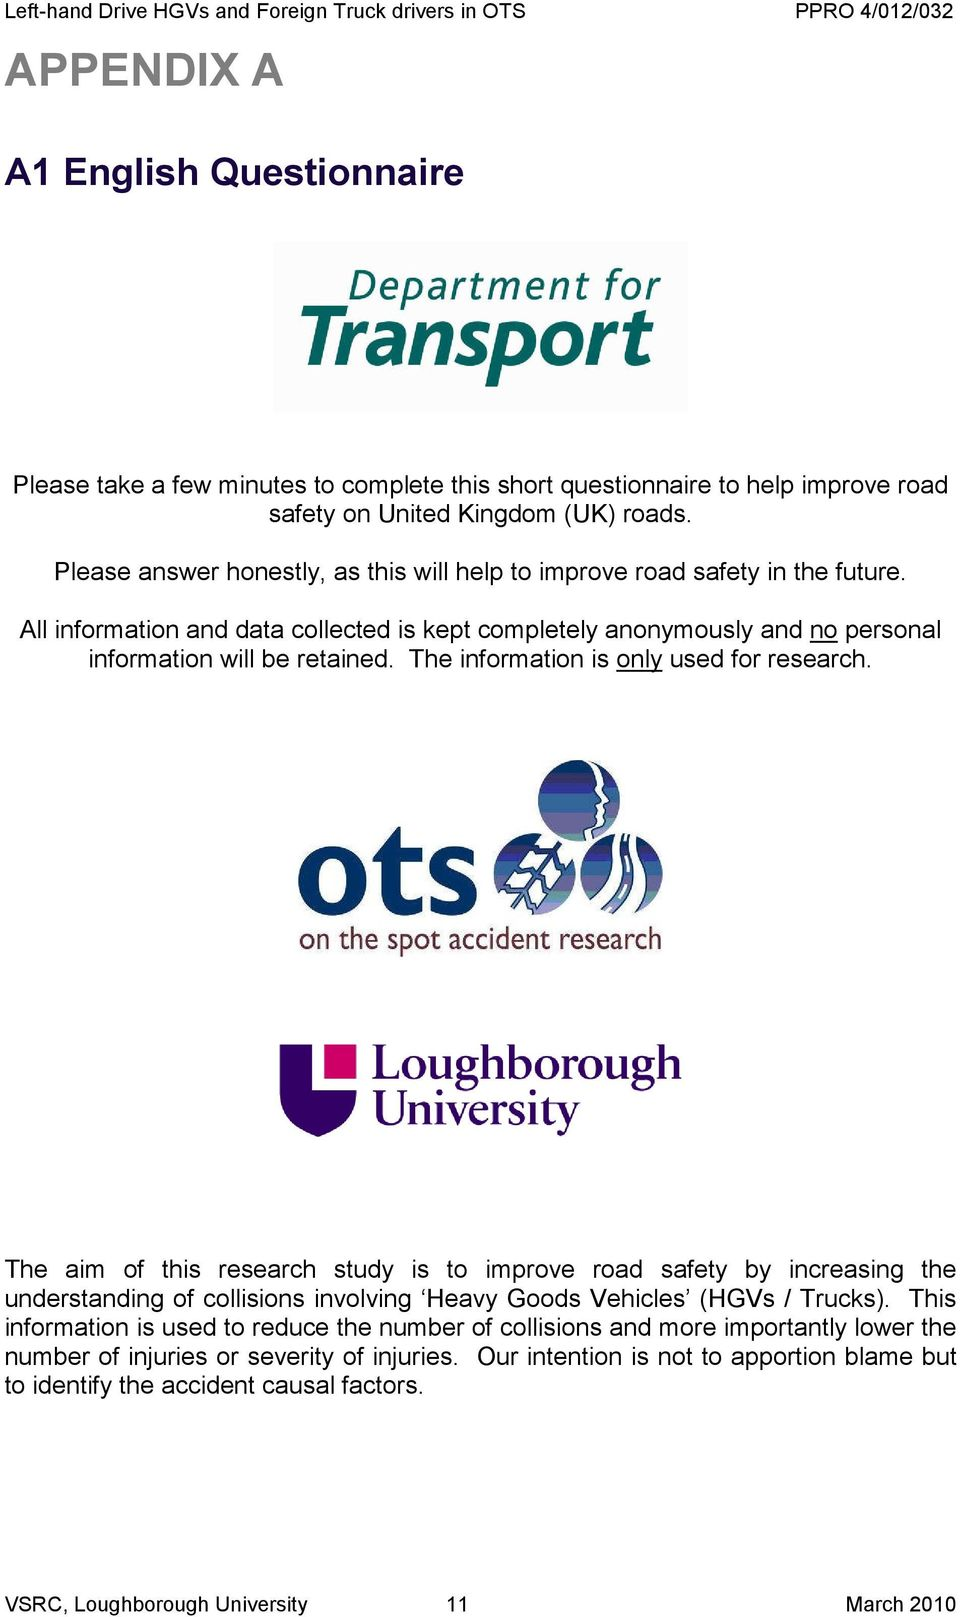 The information is only used for research. The aim of this research study is to improve road safety by increasing the understanding of collisions involving Heavy Goods Vehicles (HGVs / Trucks).